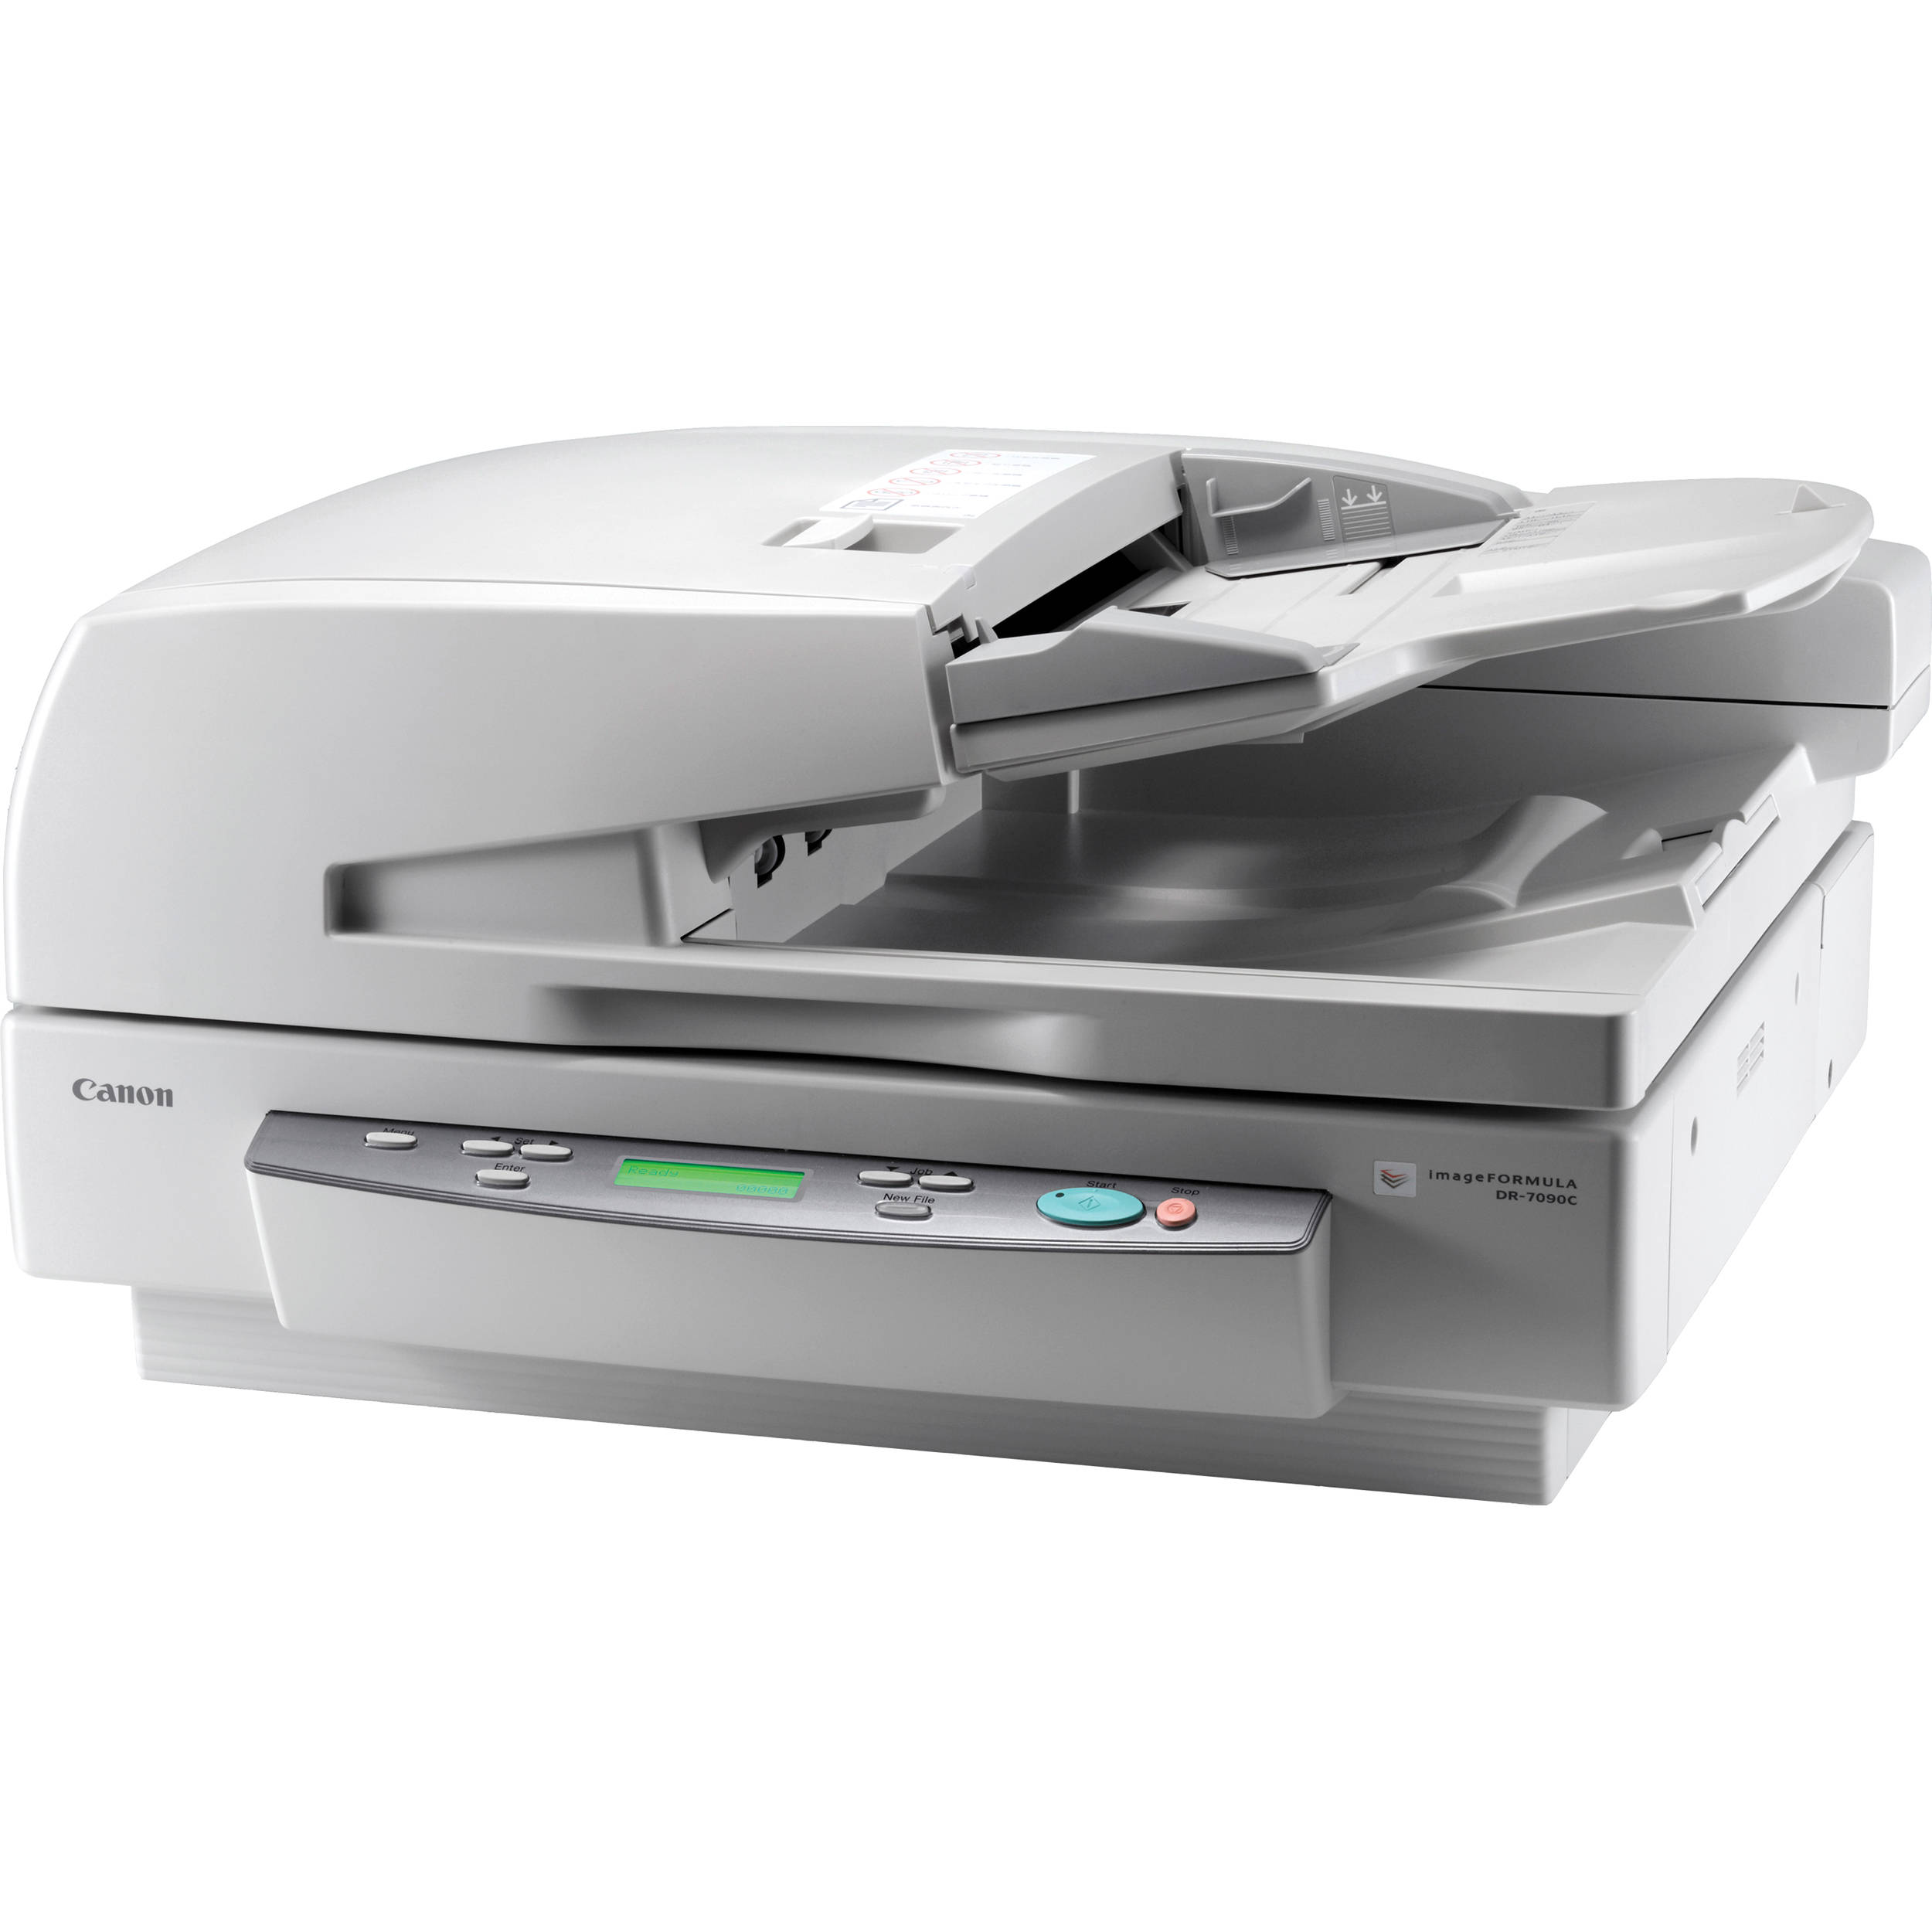 printer aphandler brother br photo multiple function mfns with and for photos prices feeder mfc scanners scanner multi